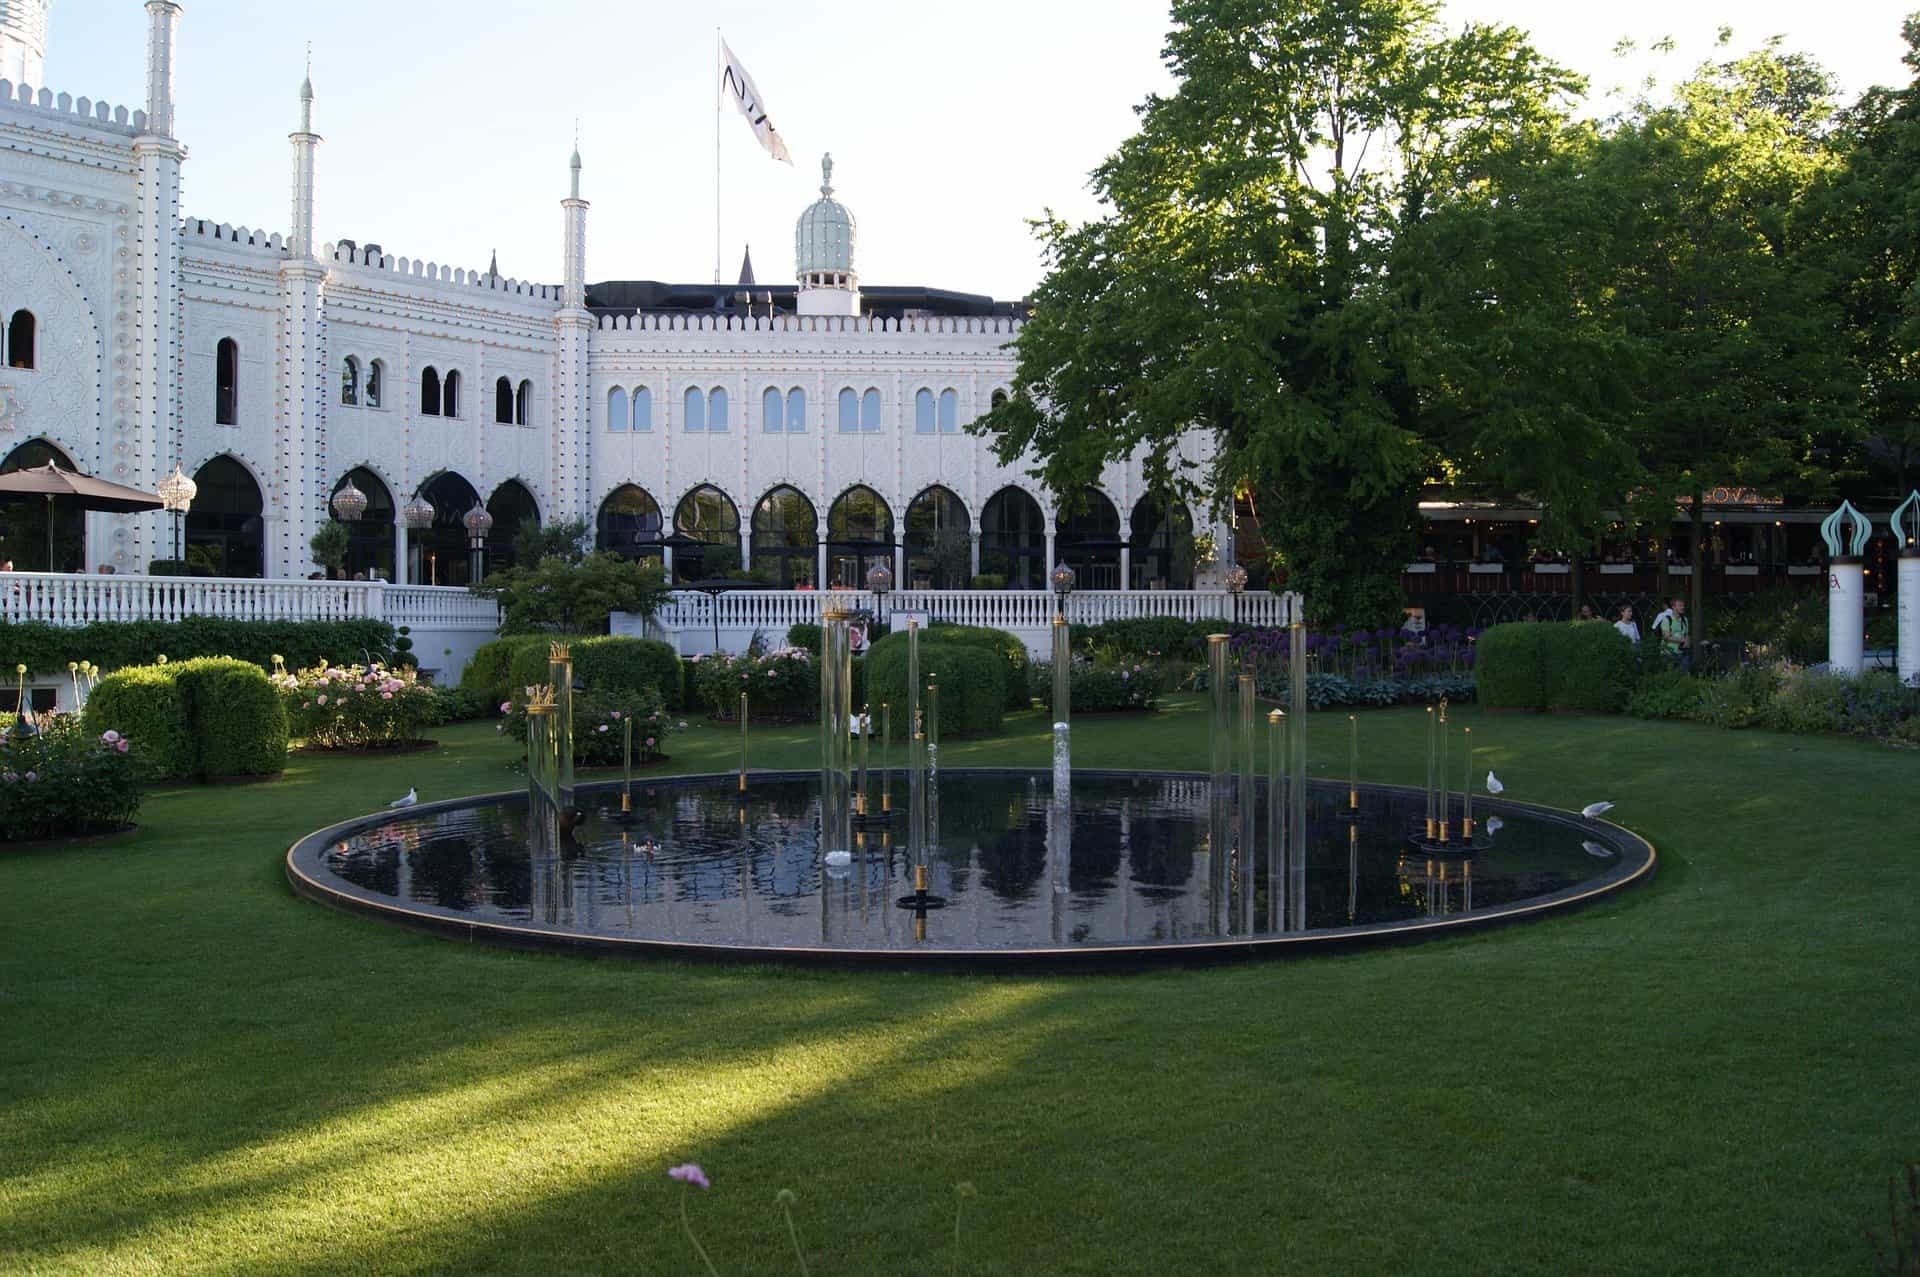 The Palace at Tivoli Gardens